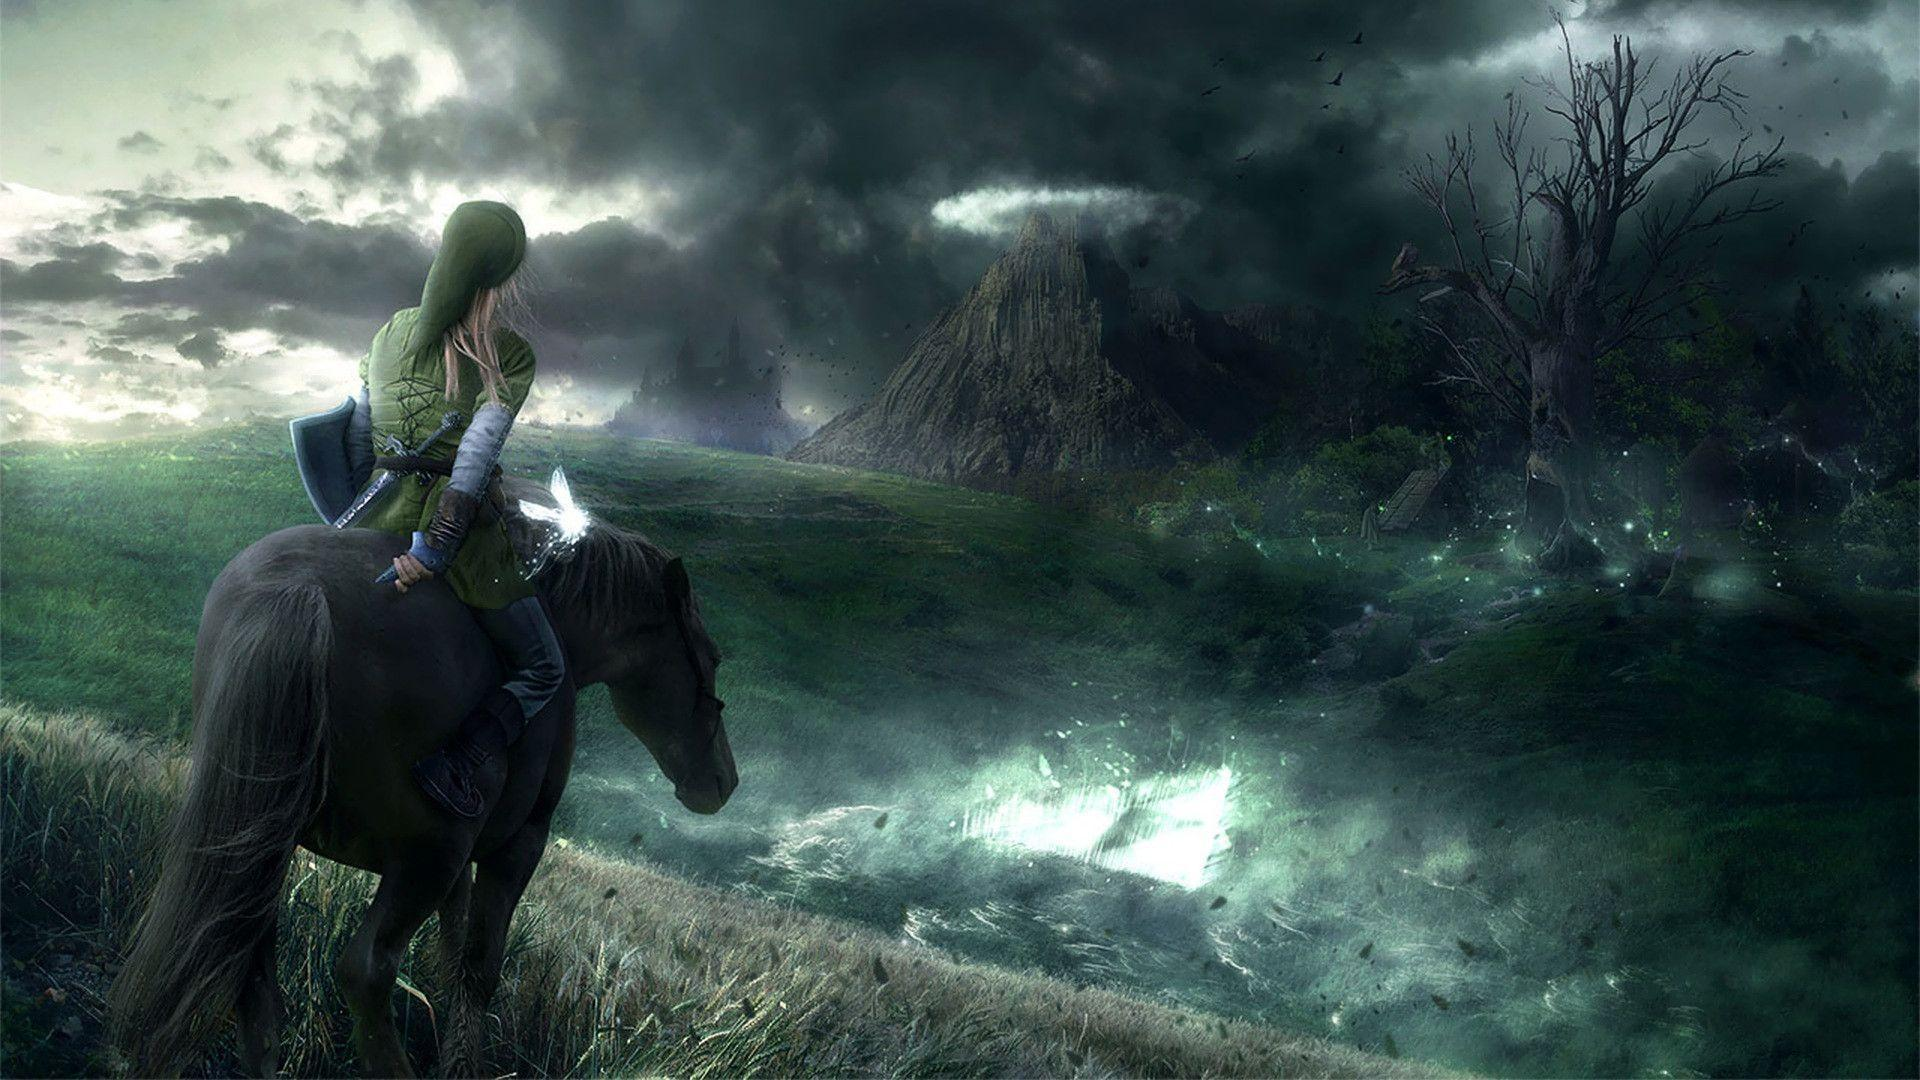 Hd wallpaper zelda - Zelda Hd Wallpaper 1920x1080